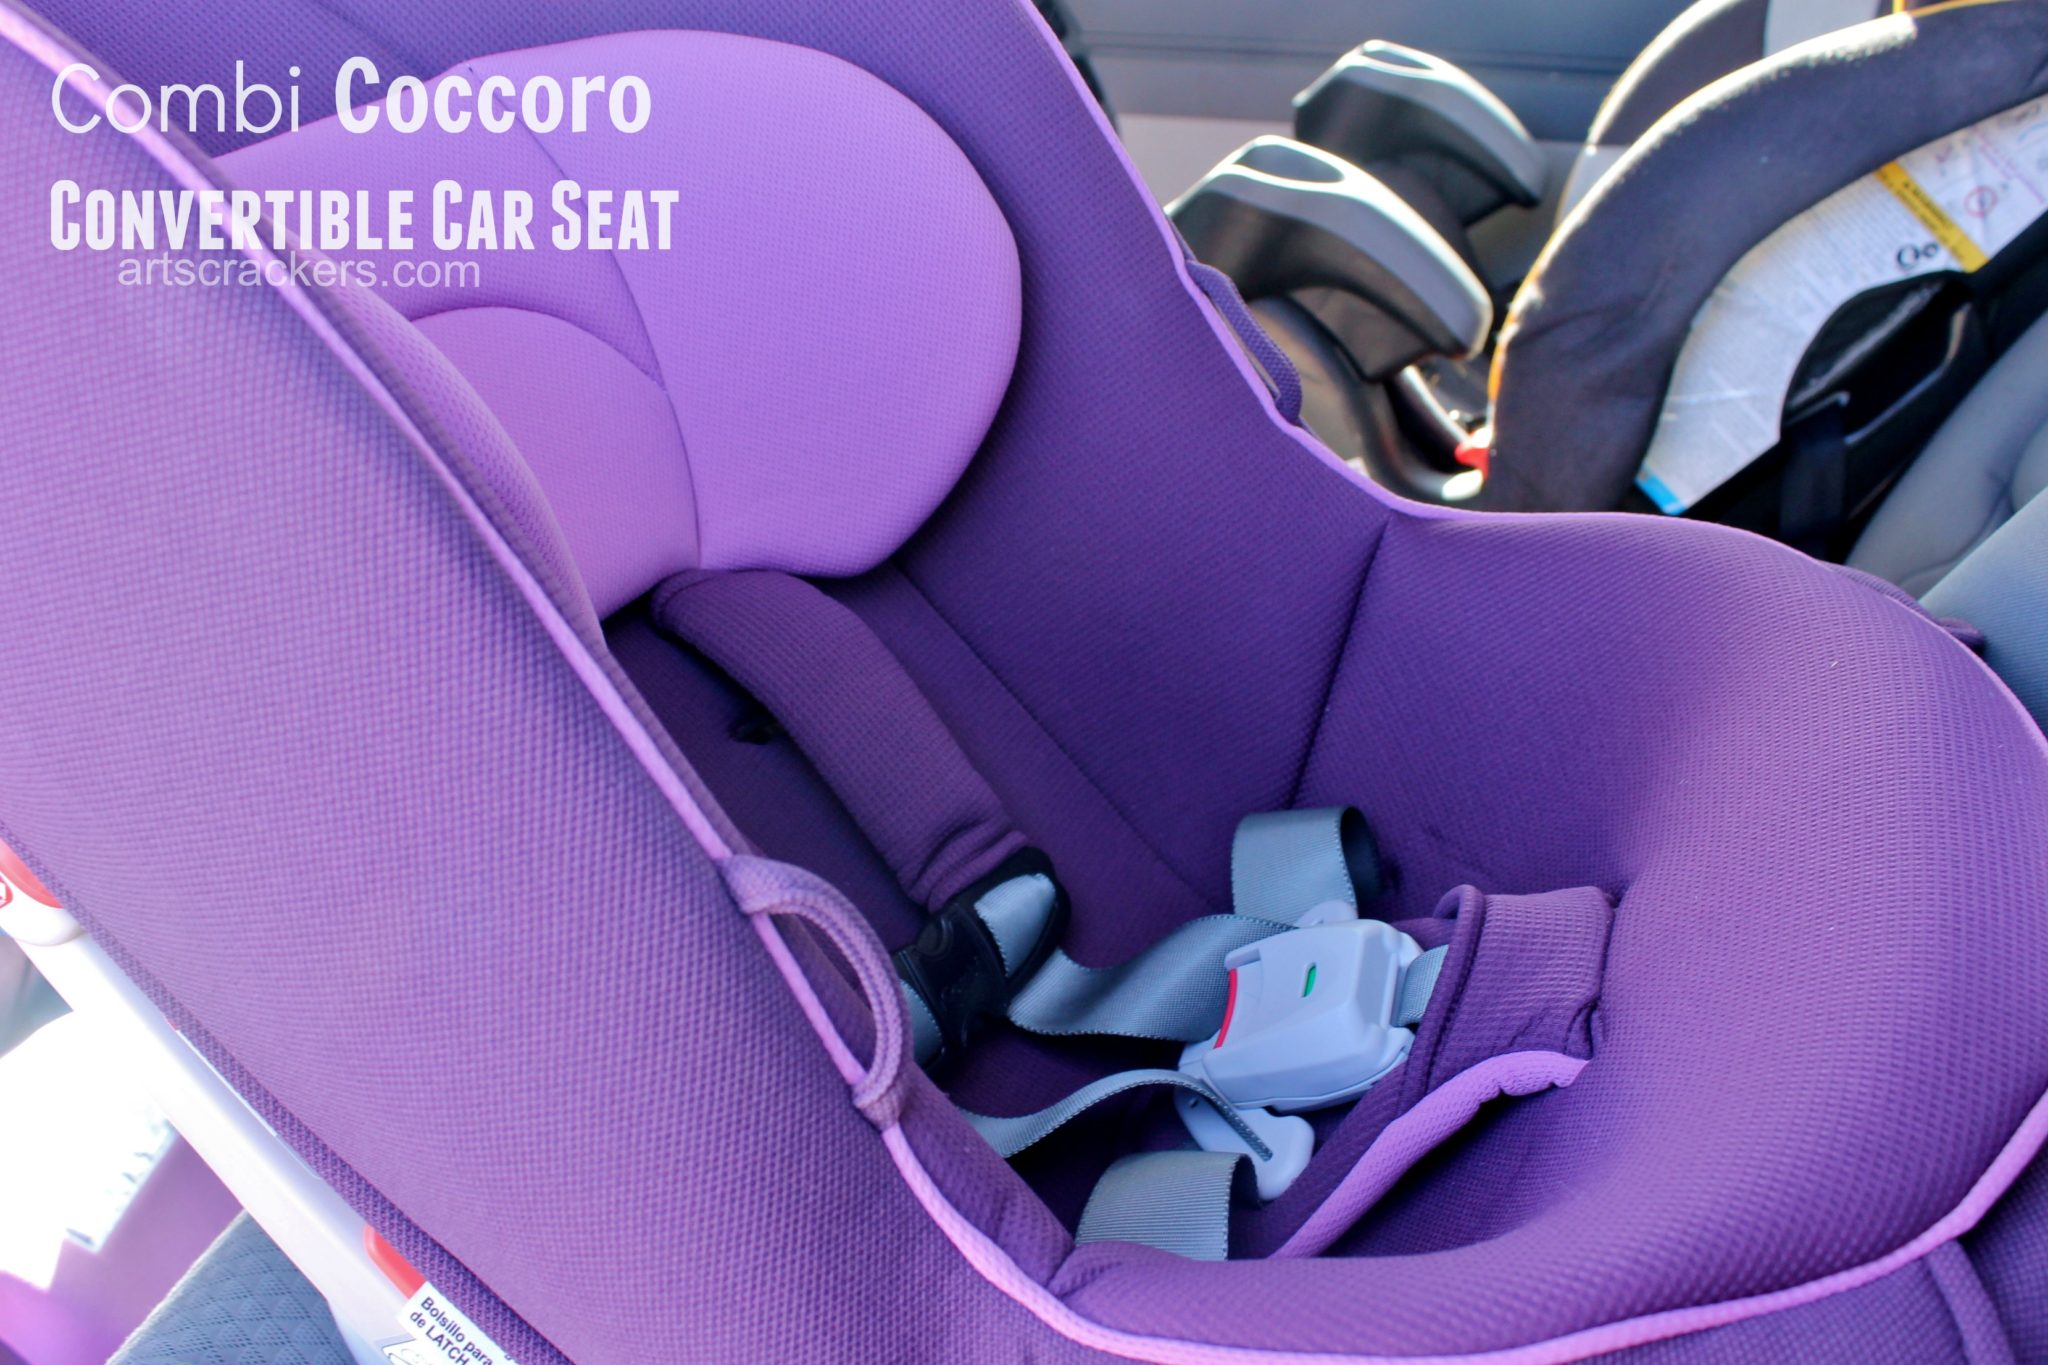 Combi Coccoro Convertible Seat. Click the picture to view the review.